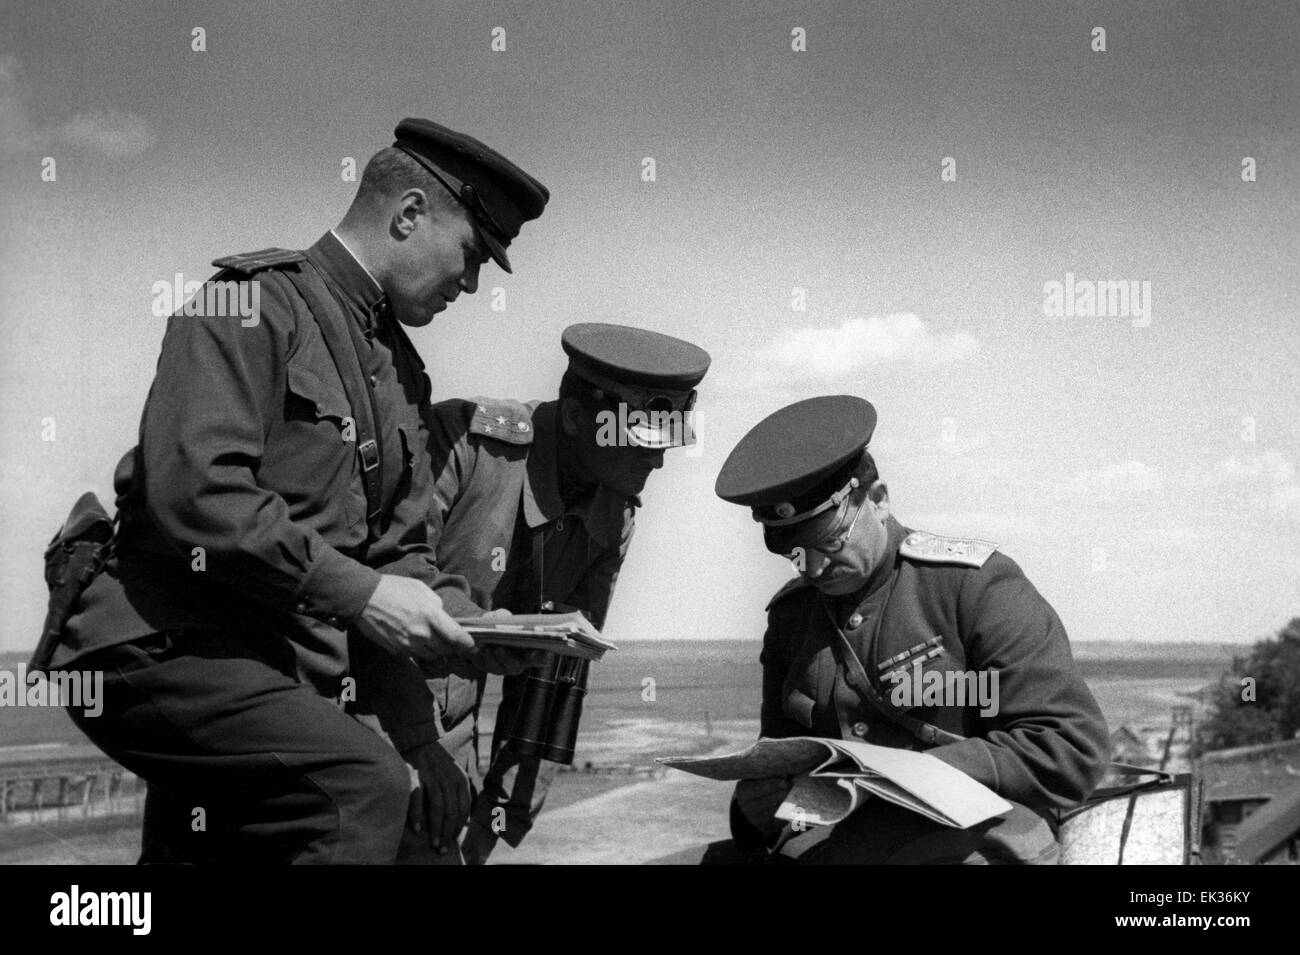 ITAR-TASS: USSR. Chief Marshal of Armoured Troops Pavel Rotmistrov R examining the current situation at the battlefront. - Stock Image